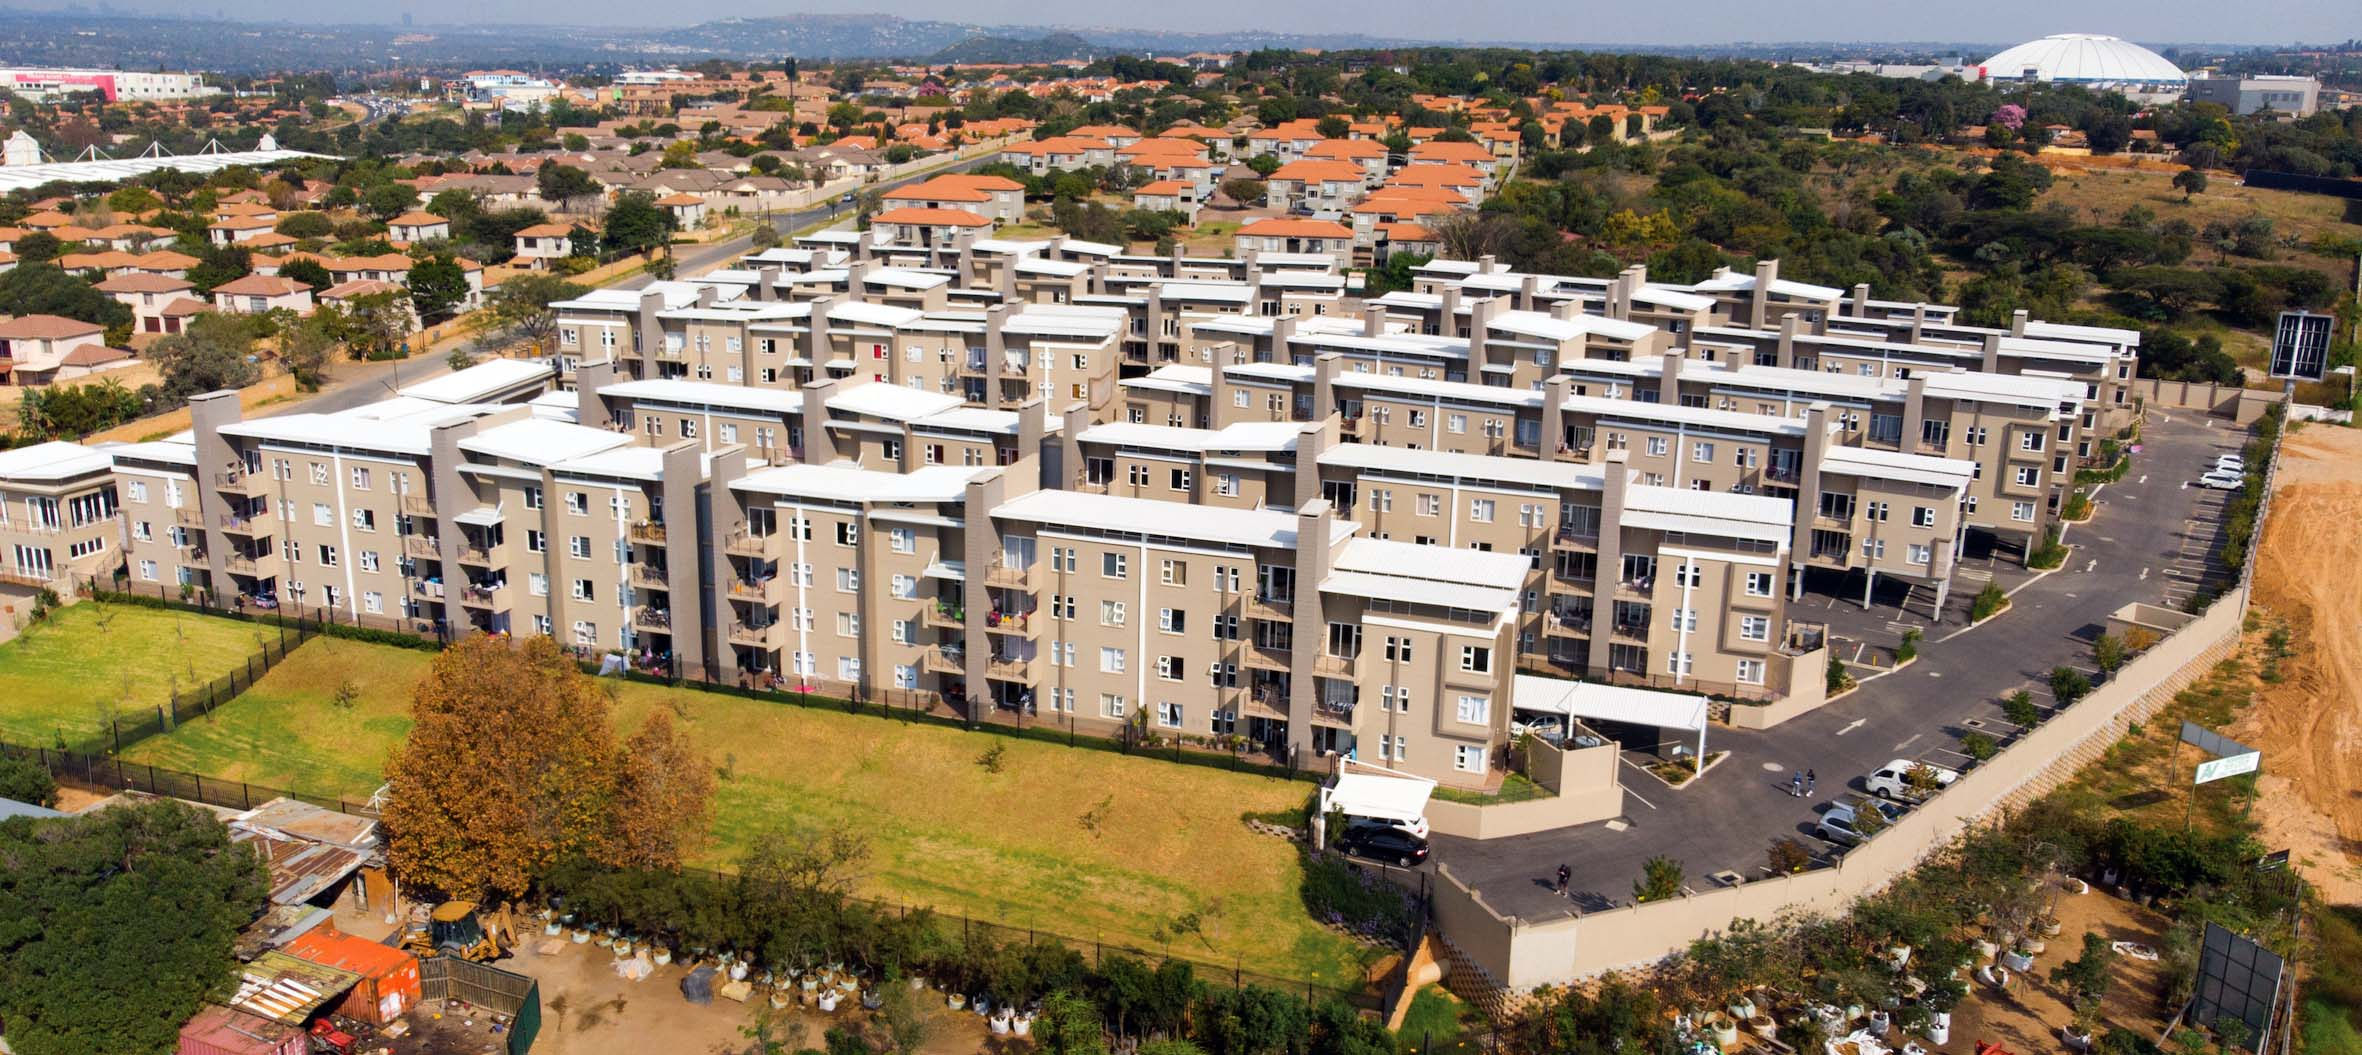 295 apartments with uPVC windows and doors